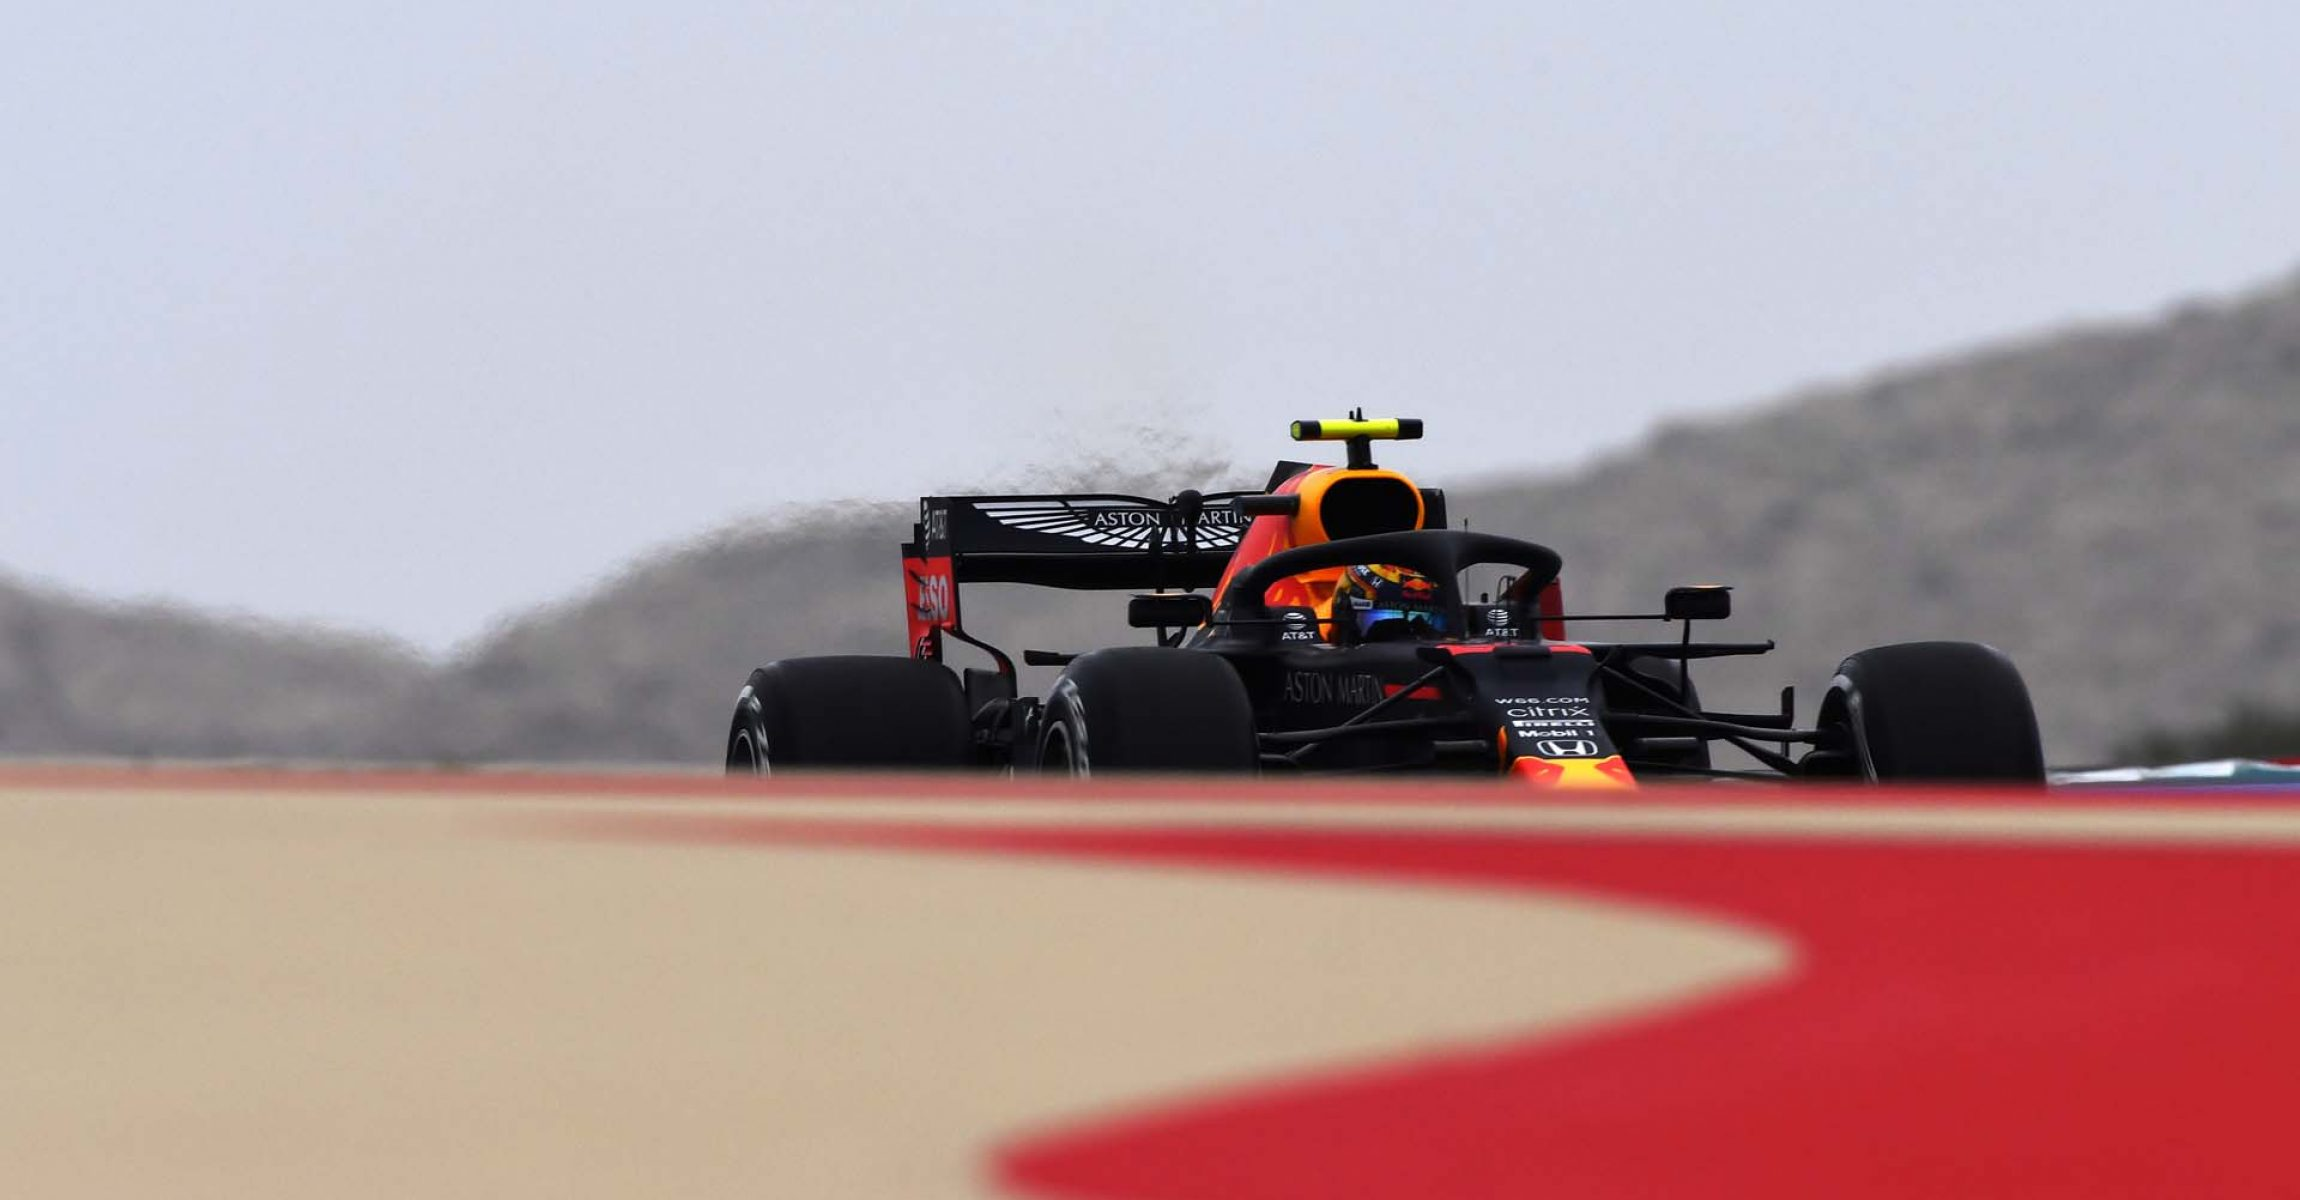 BAHRAIN, BAHRAIN - NOVEMBER 27: Alexander Albon of Thailand driving the (23) Aston Martin Red Bull Racing RB16 on track during practice ahead of the F1 Grand Prix of Bahrain at Bahrain International Circuit on November 27, 2020 in Bahrain, Bahrain. (Photo by Rudy Carezzevoli/Getty Images)